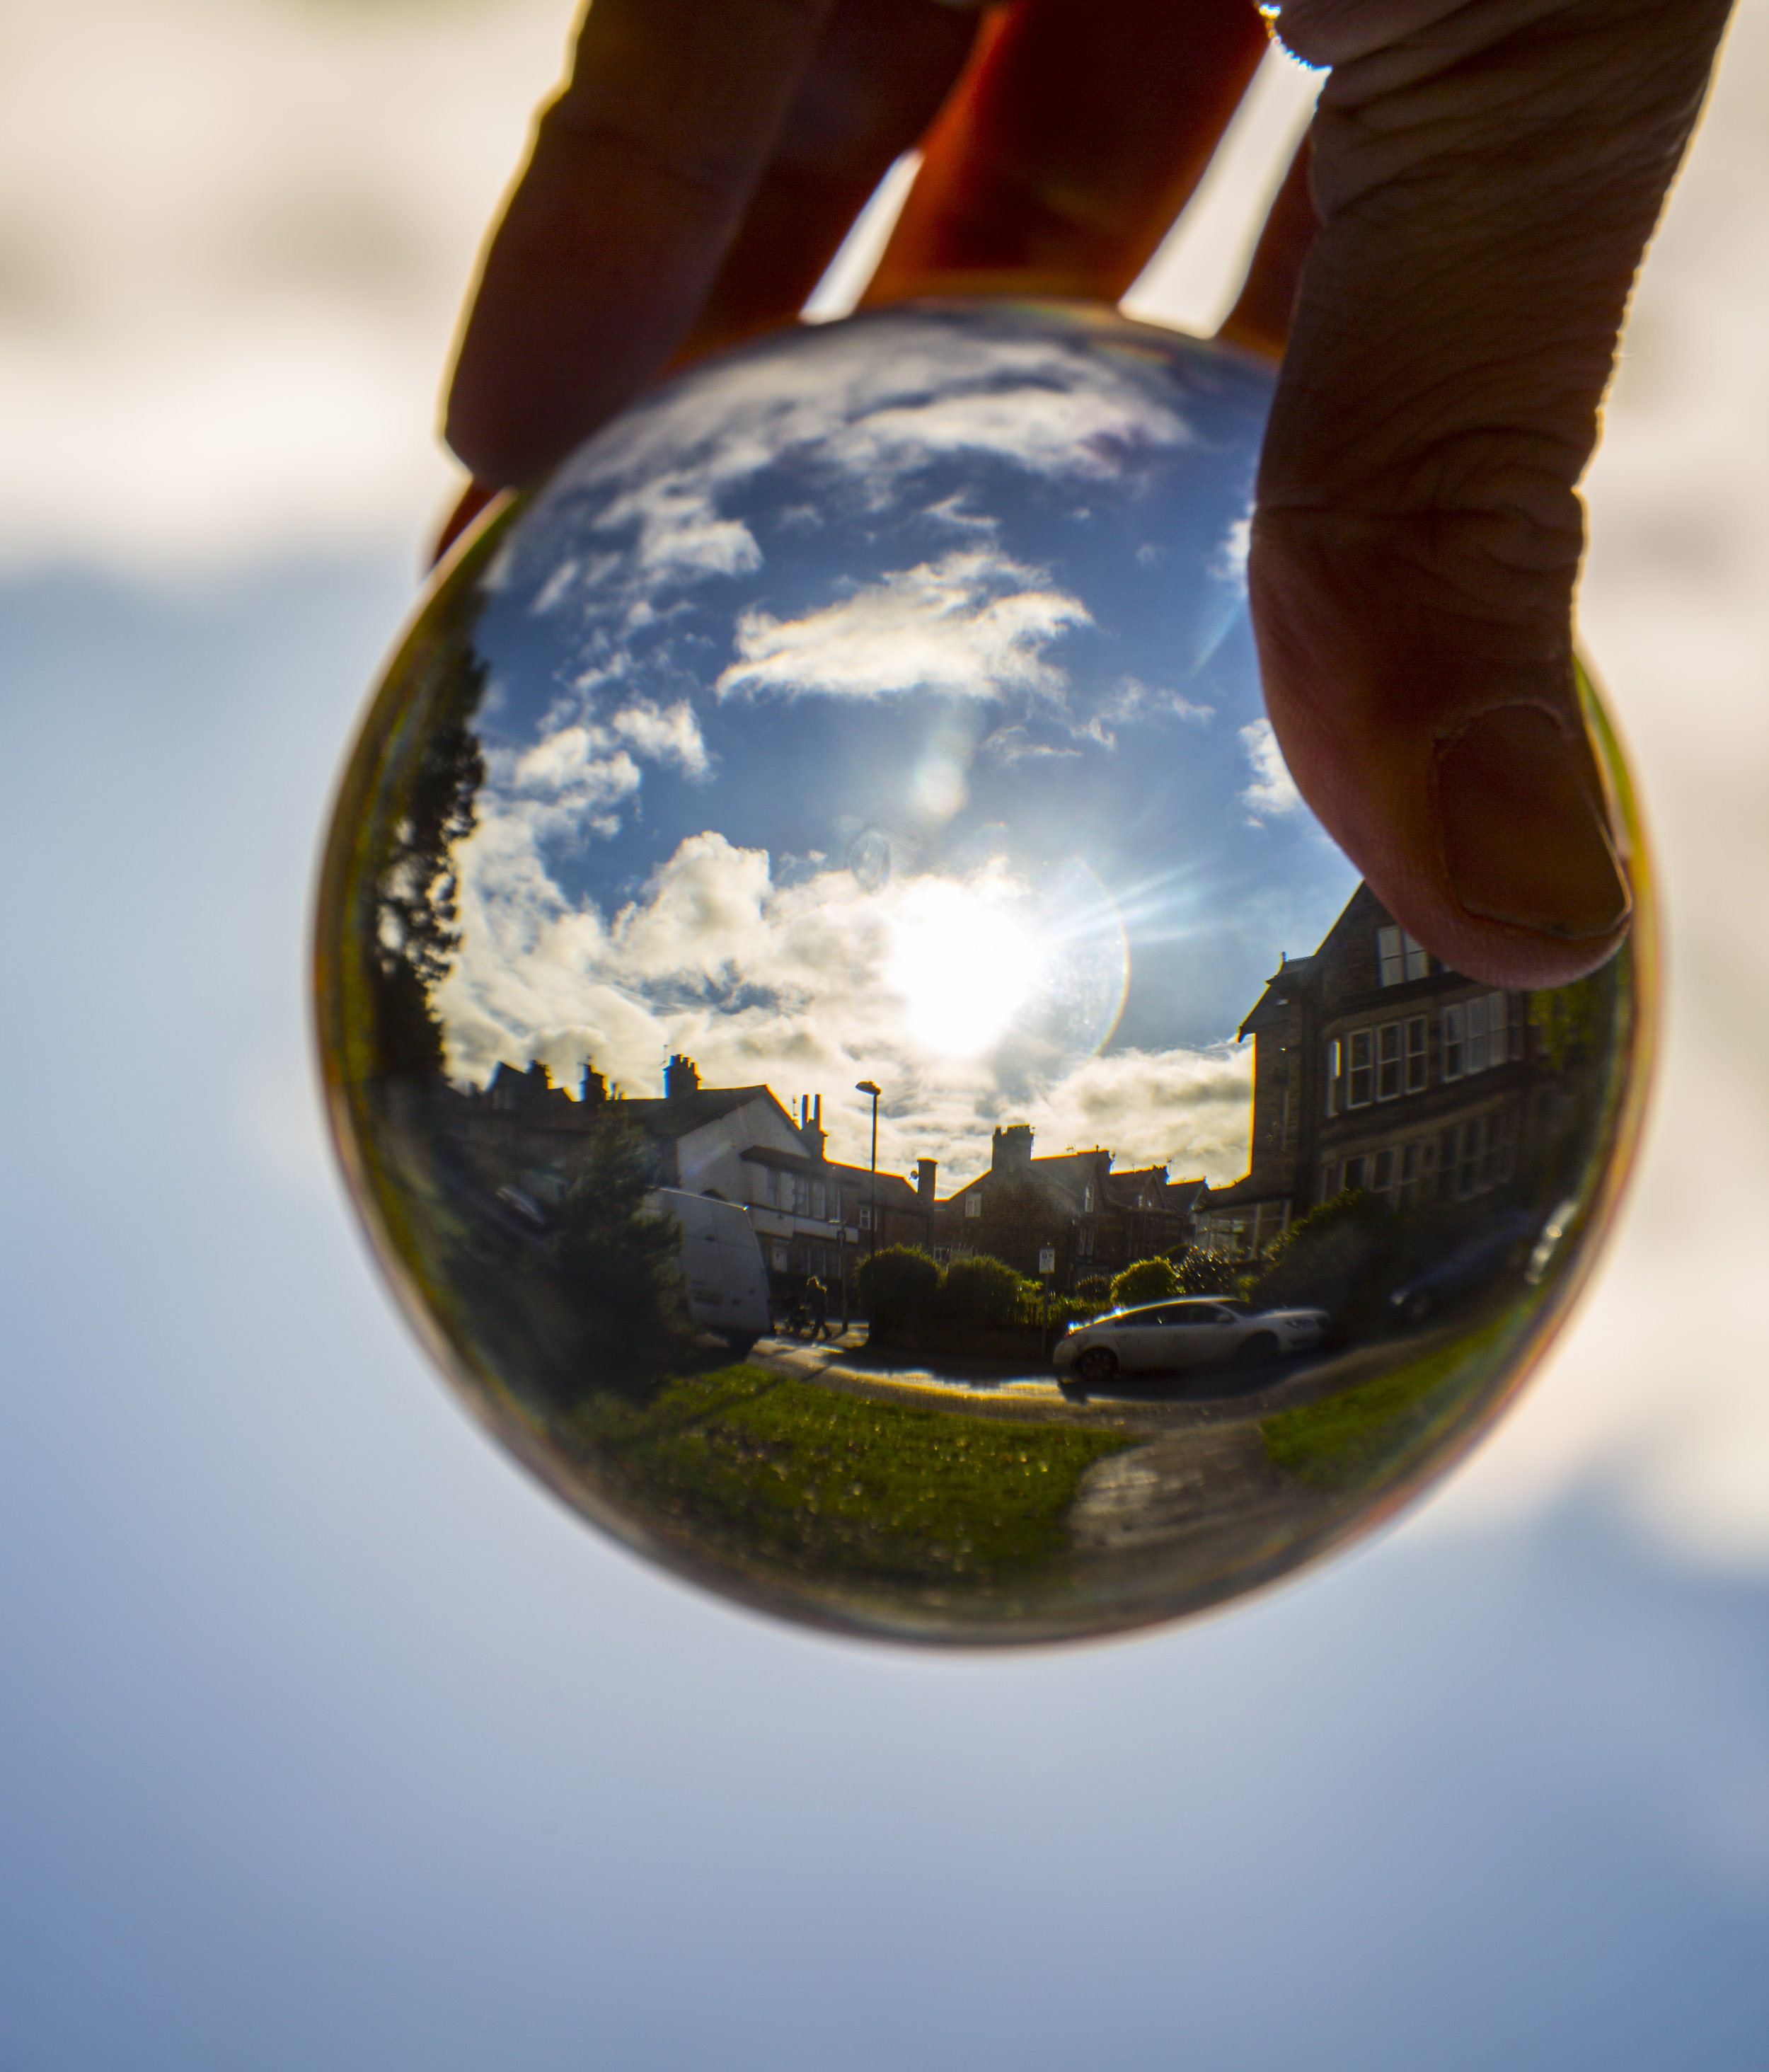 crystal-ball-and-blue-sky-14785257554gz.jpg